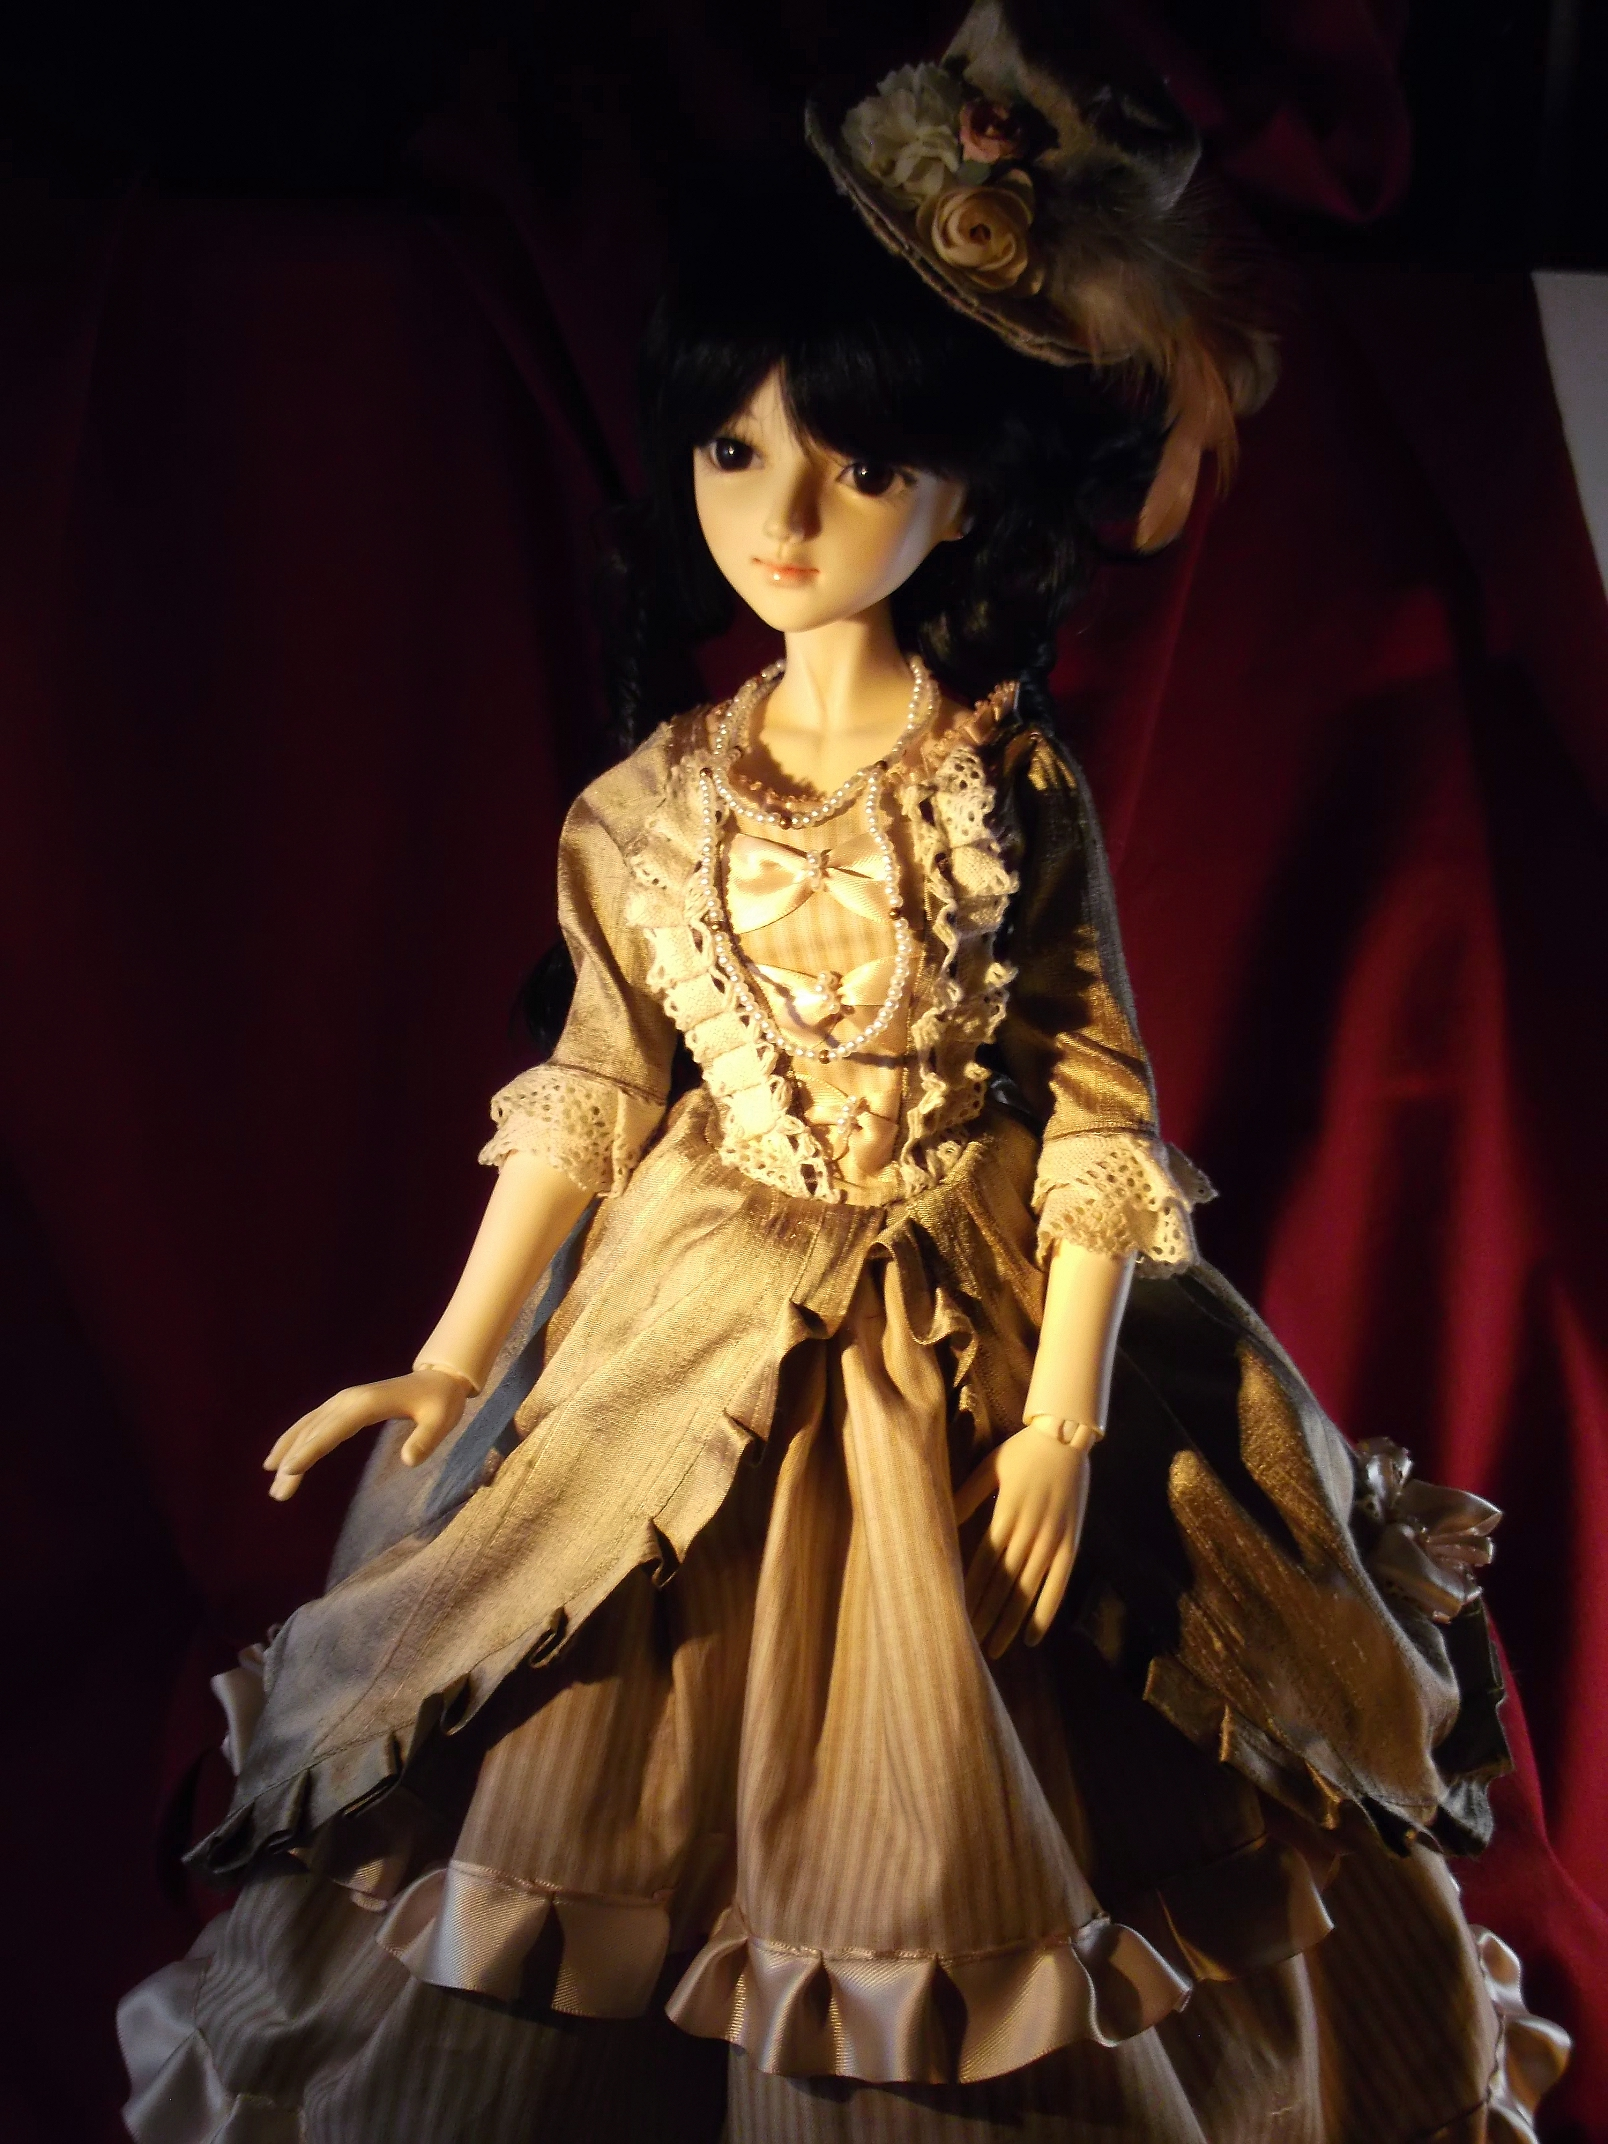 Dollheart-esque Fullset Dress Outfit for Ball Jointed Doll (BJD)